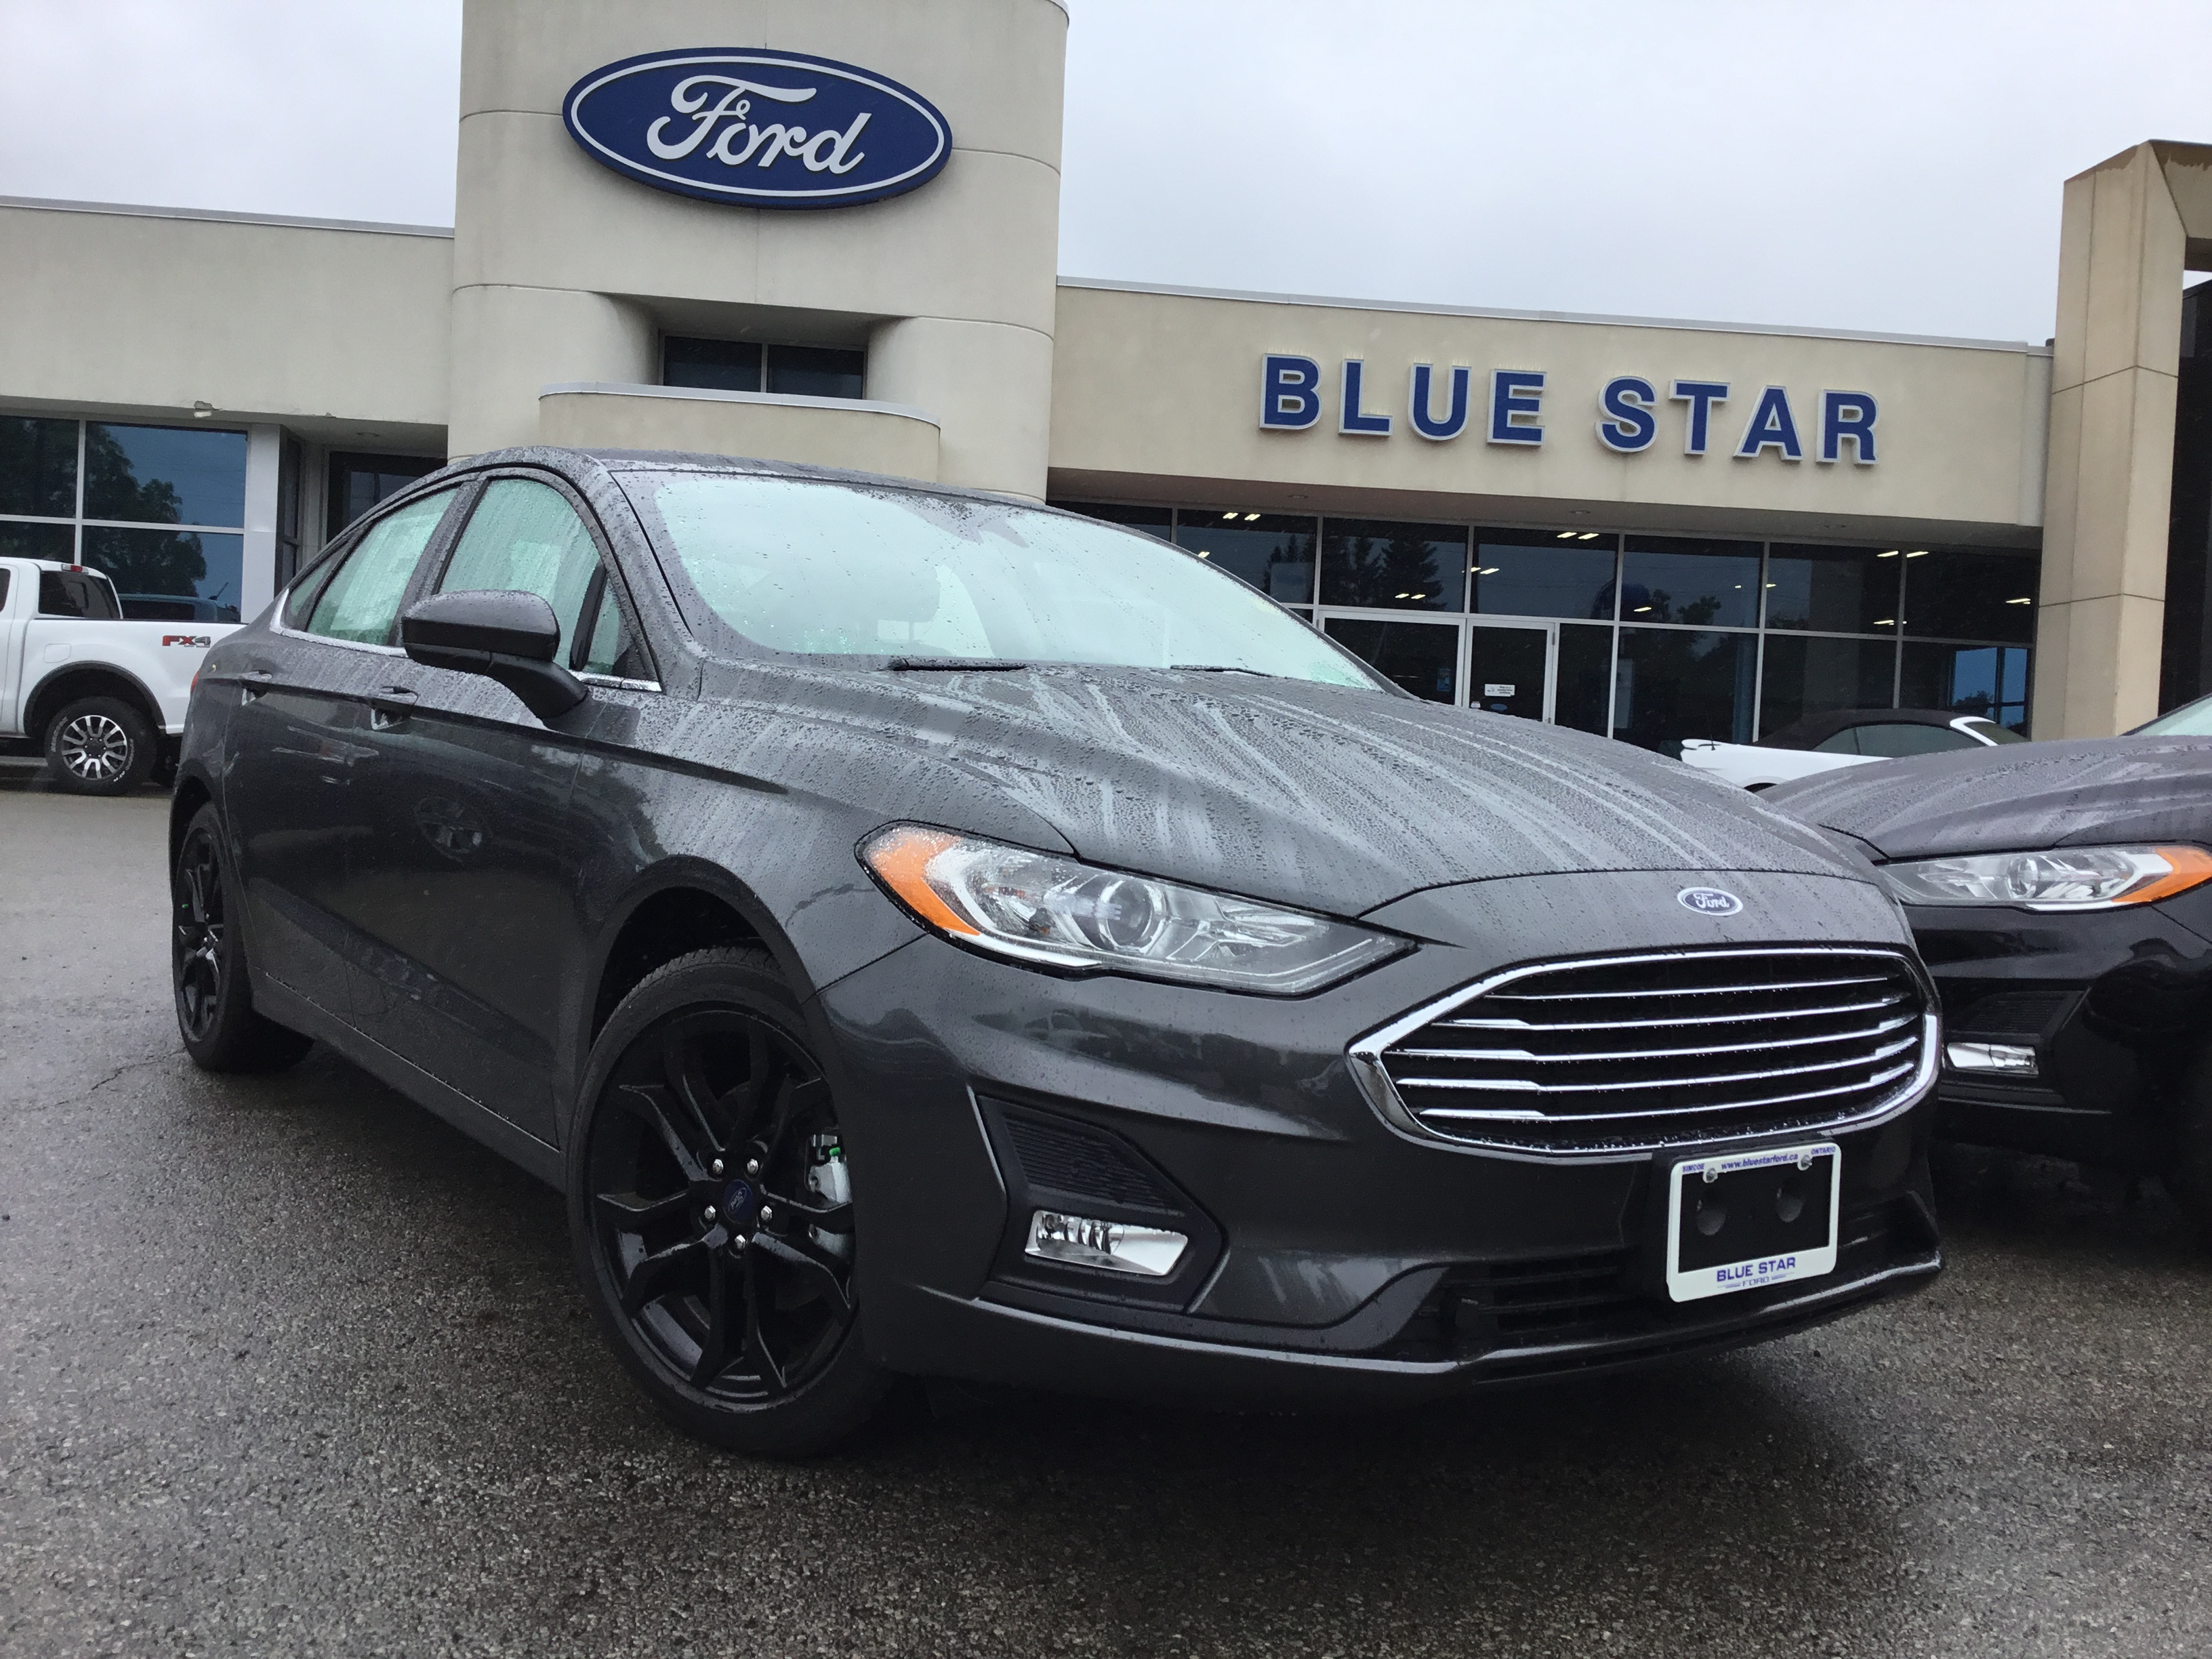 Ford Fusion 2020 Lease Price